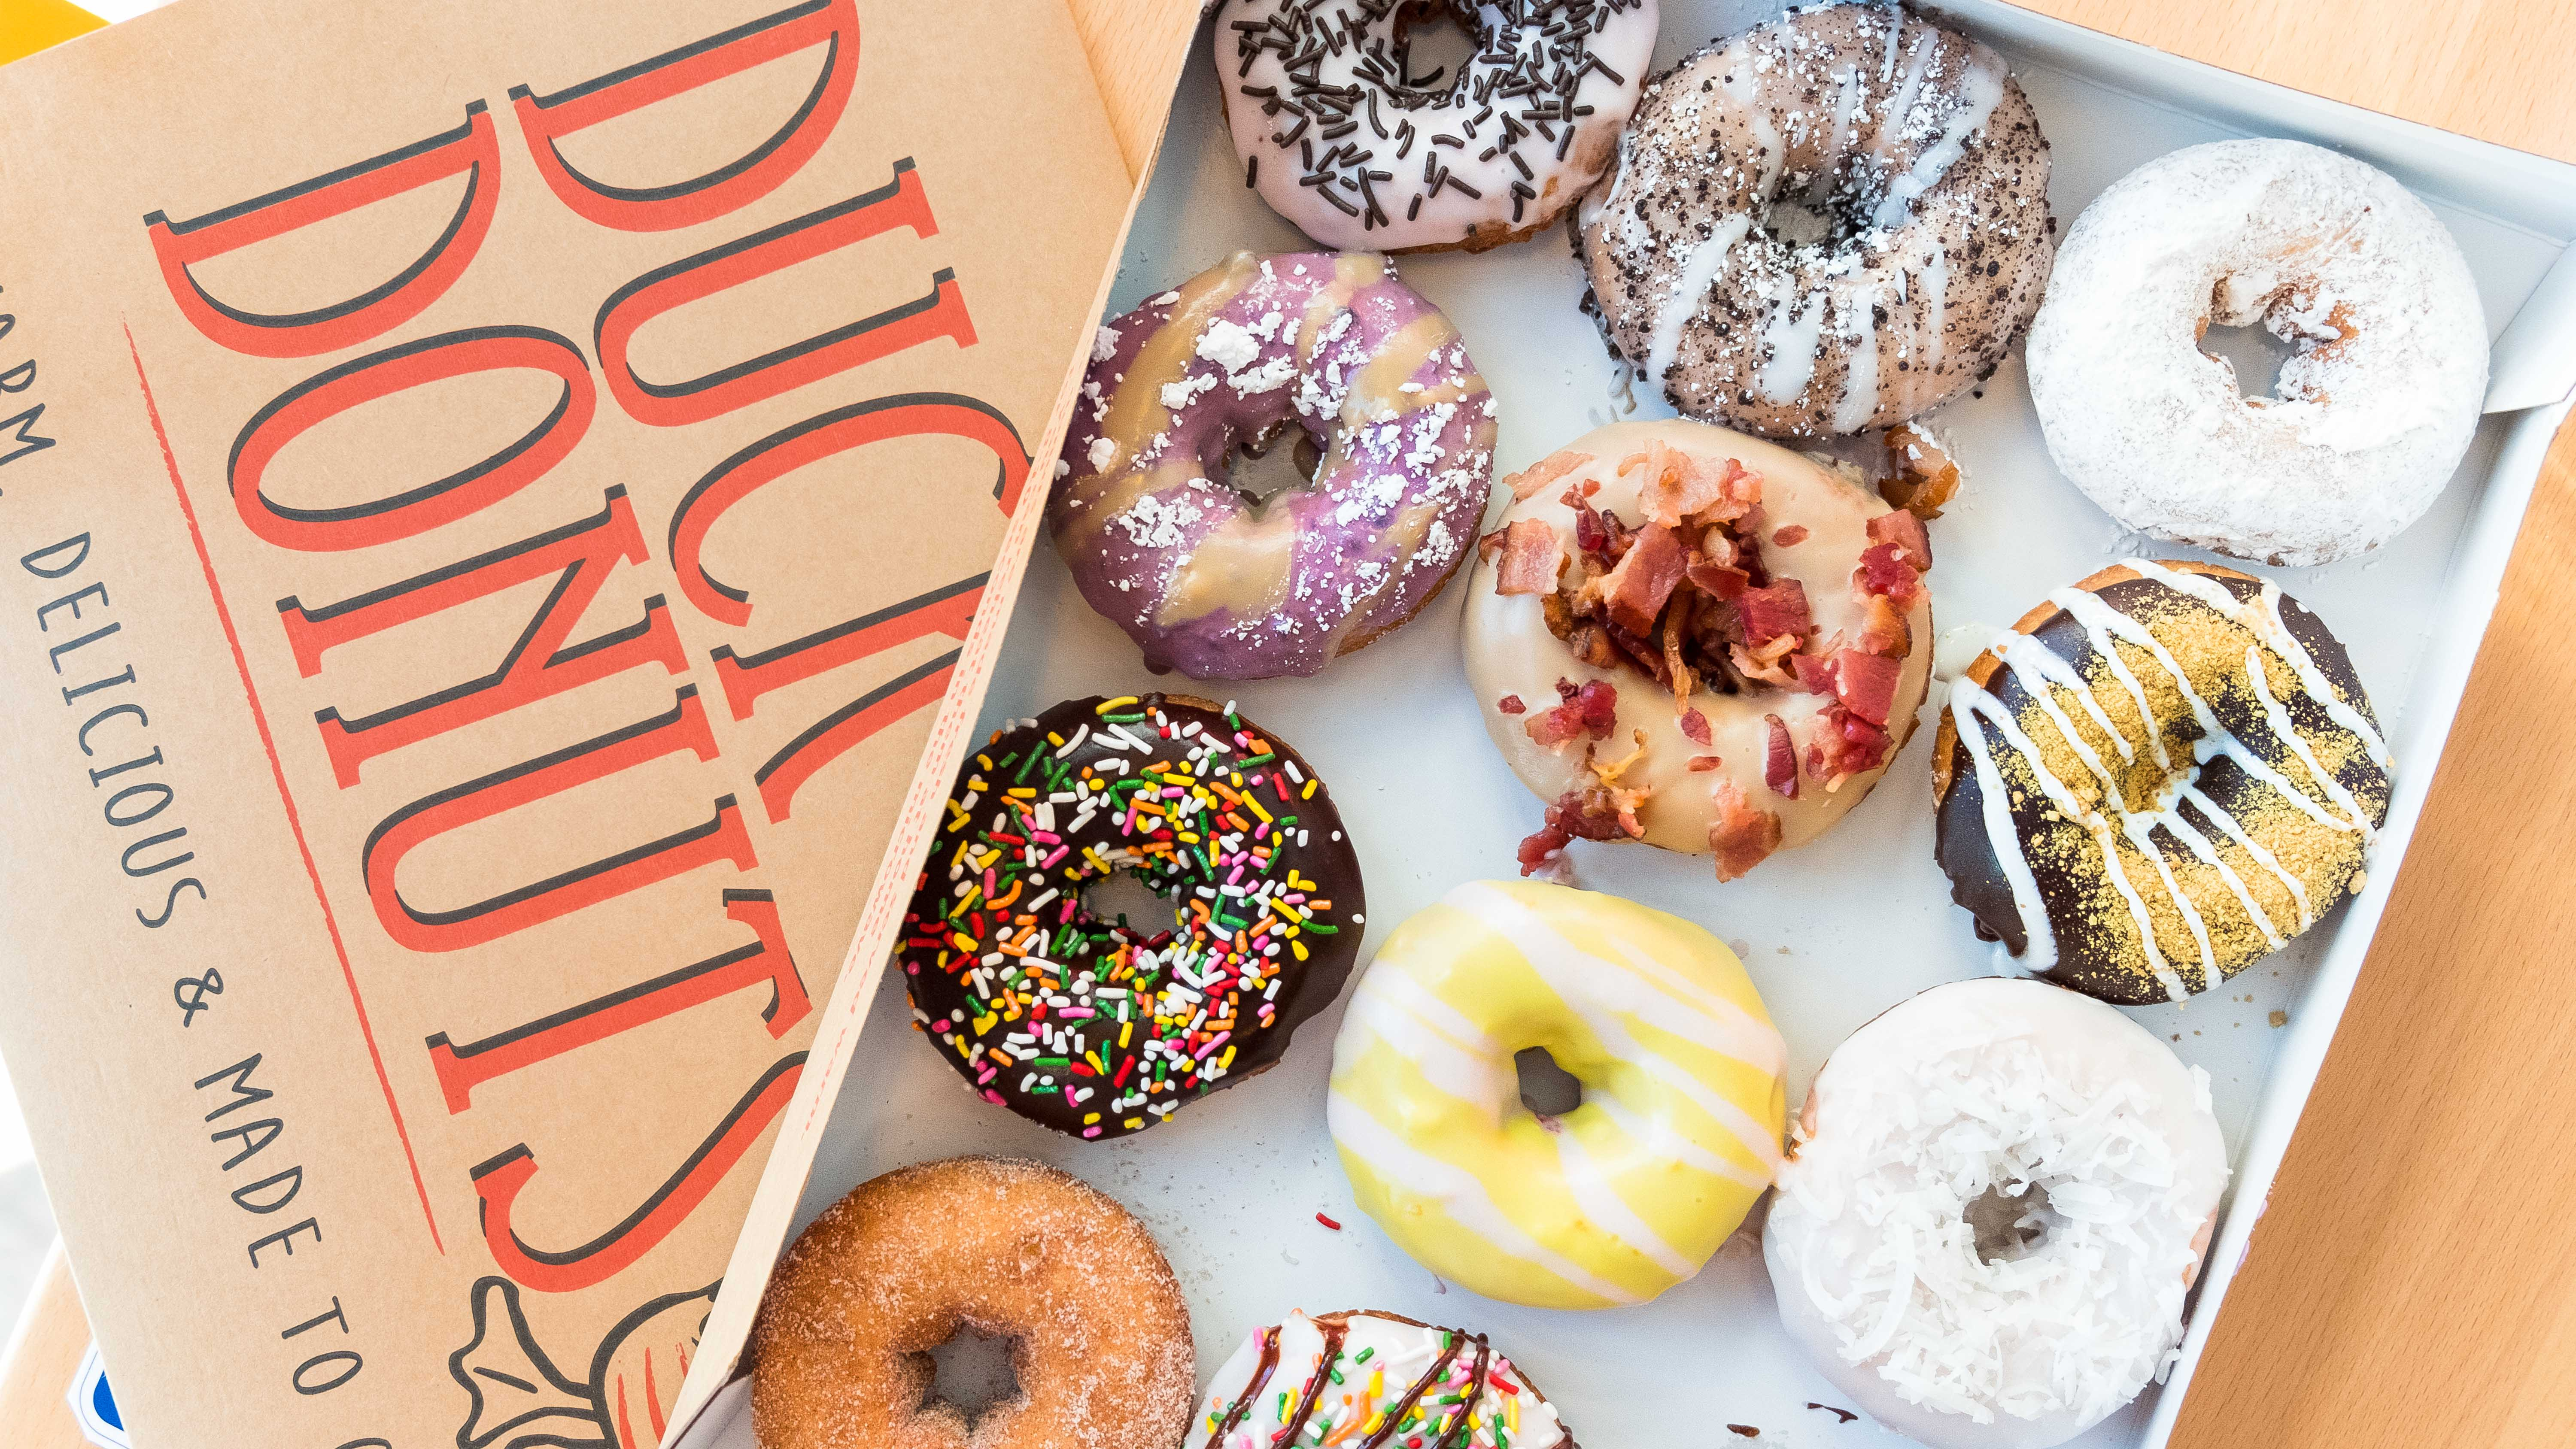 fd5e0f779c42 Made-to-Order, Customizable Doughnuts Touch Down in Encinitas ...